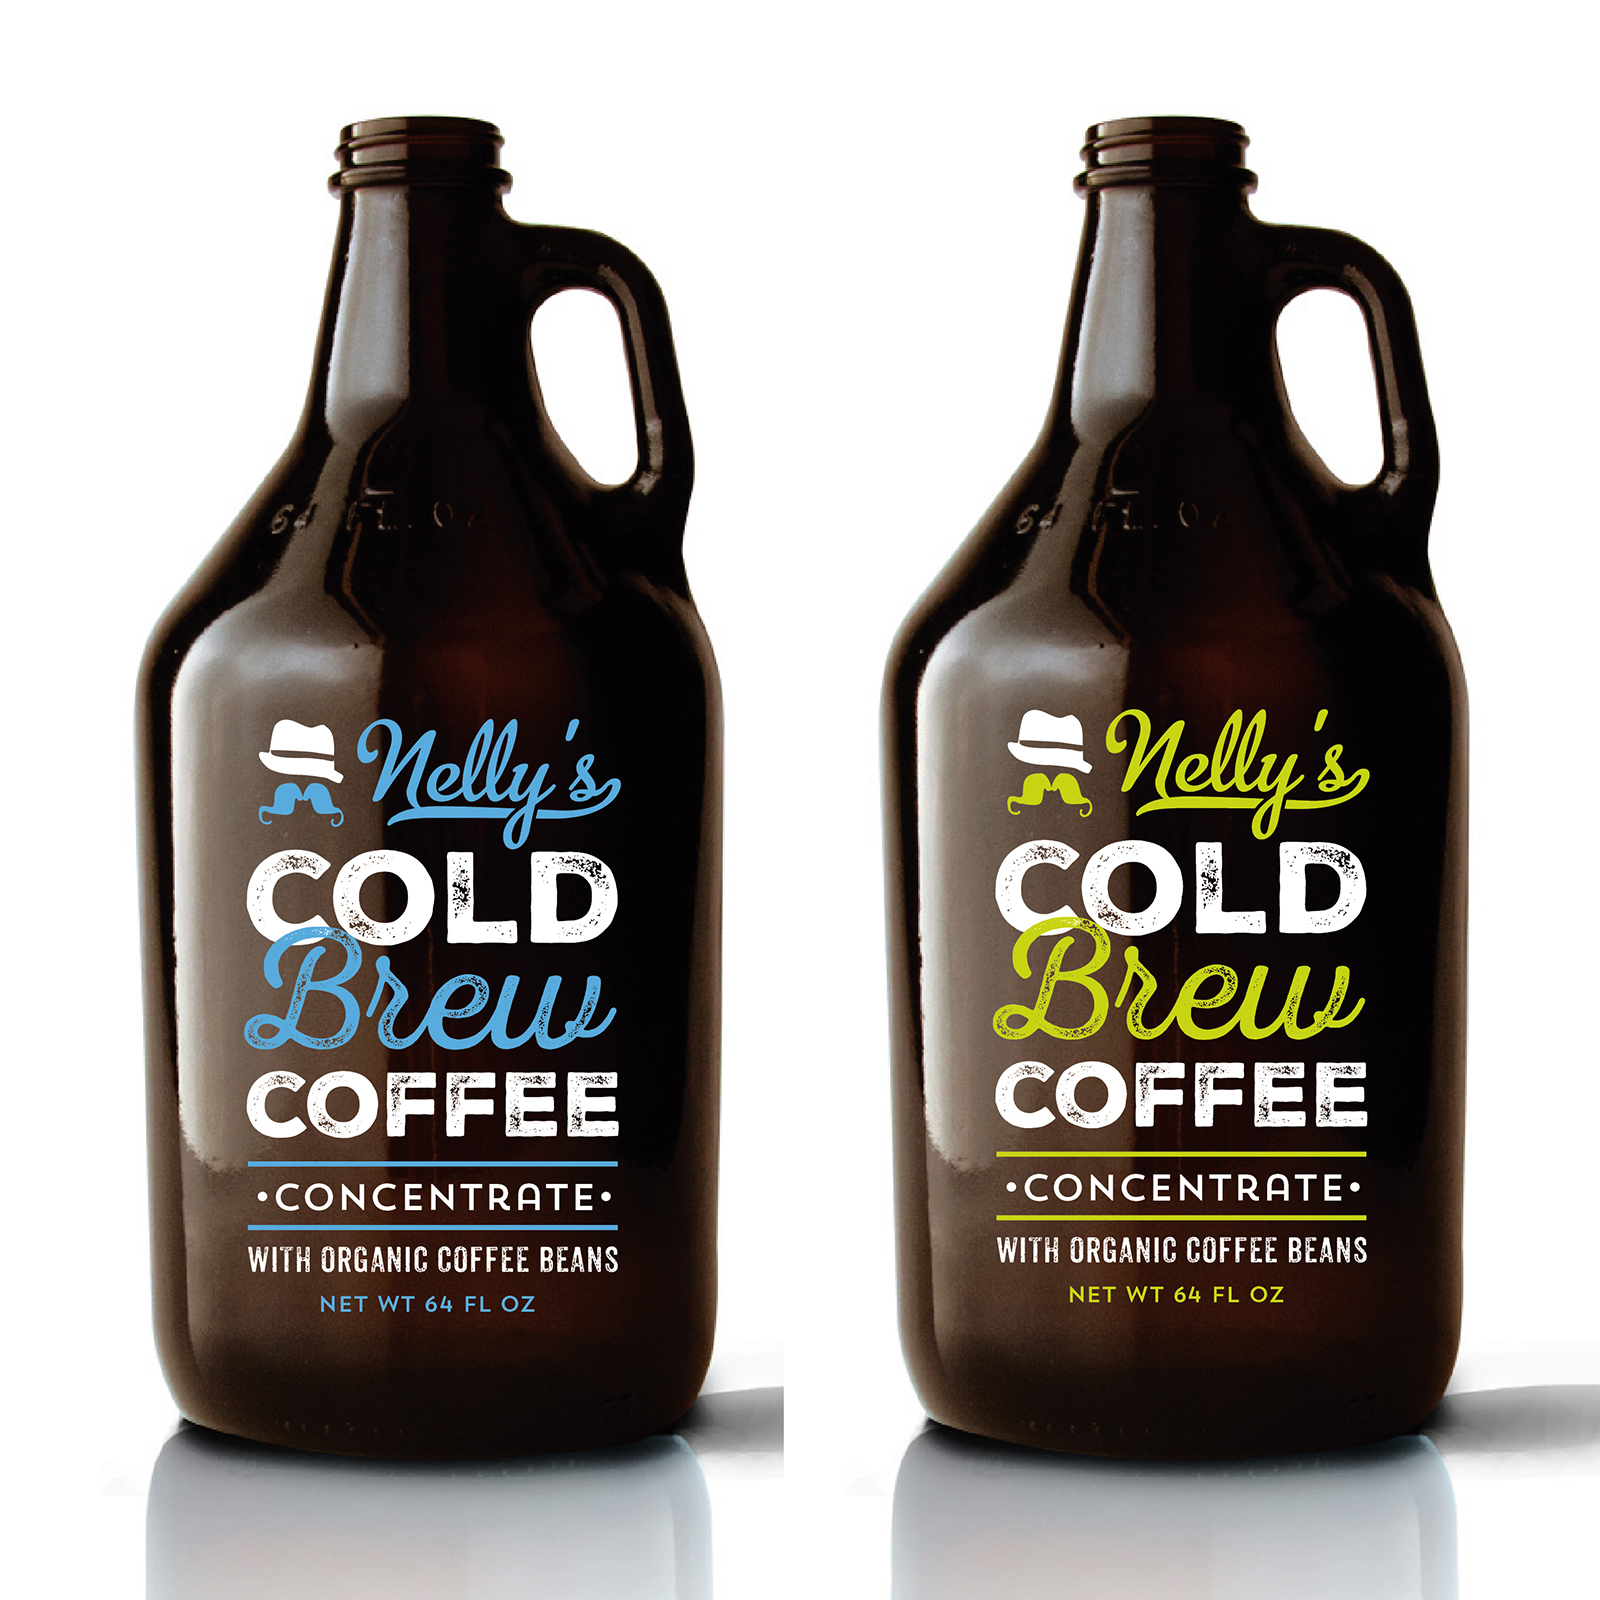 Cold Brew Coffee Bottle Png